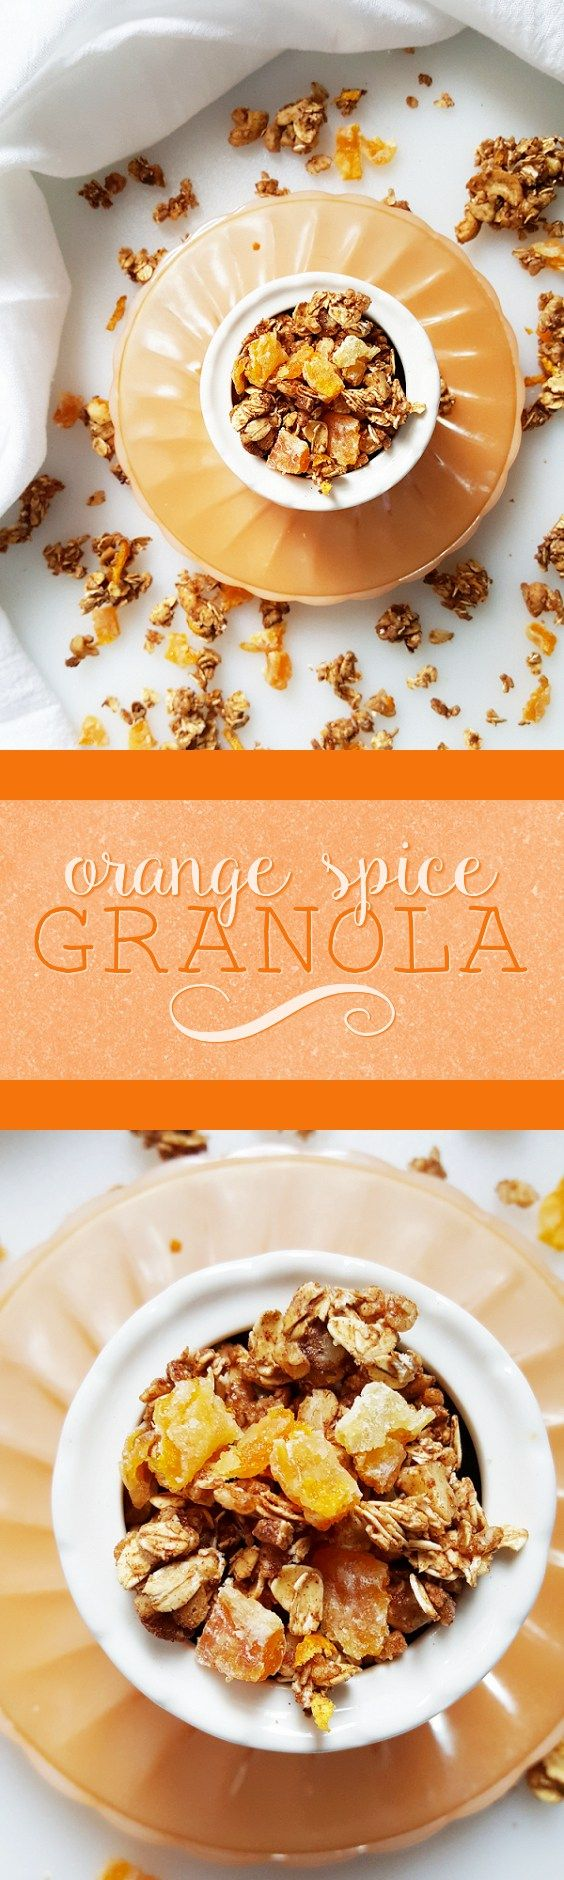 {Healthy; Low Calorie; Vegan} This orange spice granola is a great way to start your morning-- and it's made without oil, butter, or refined sugar!